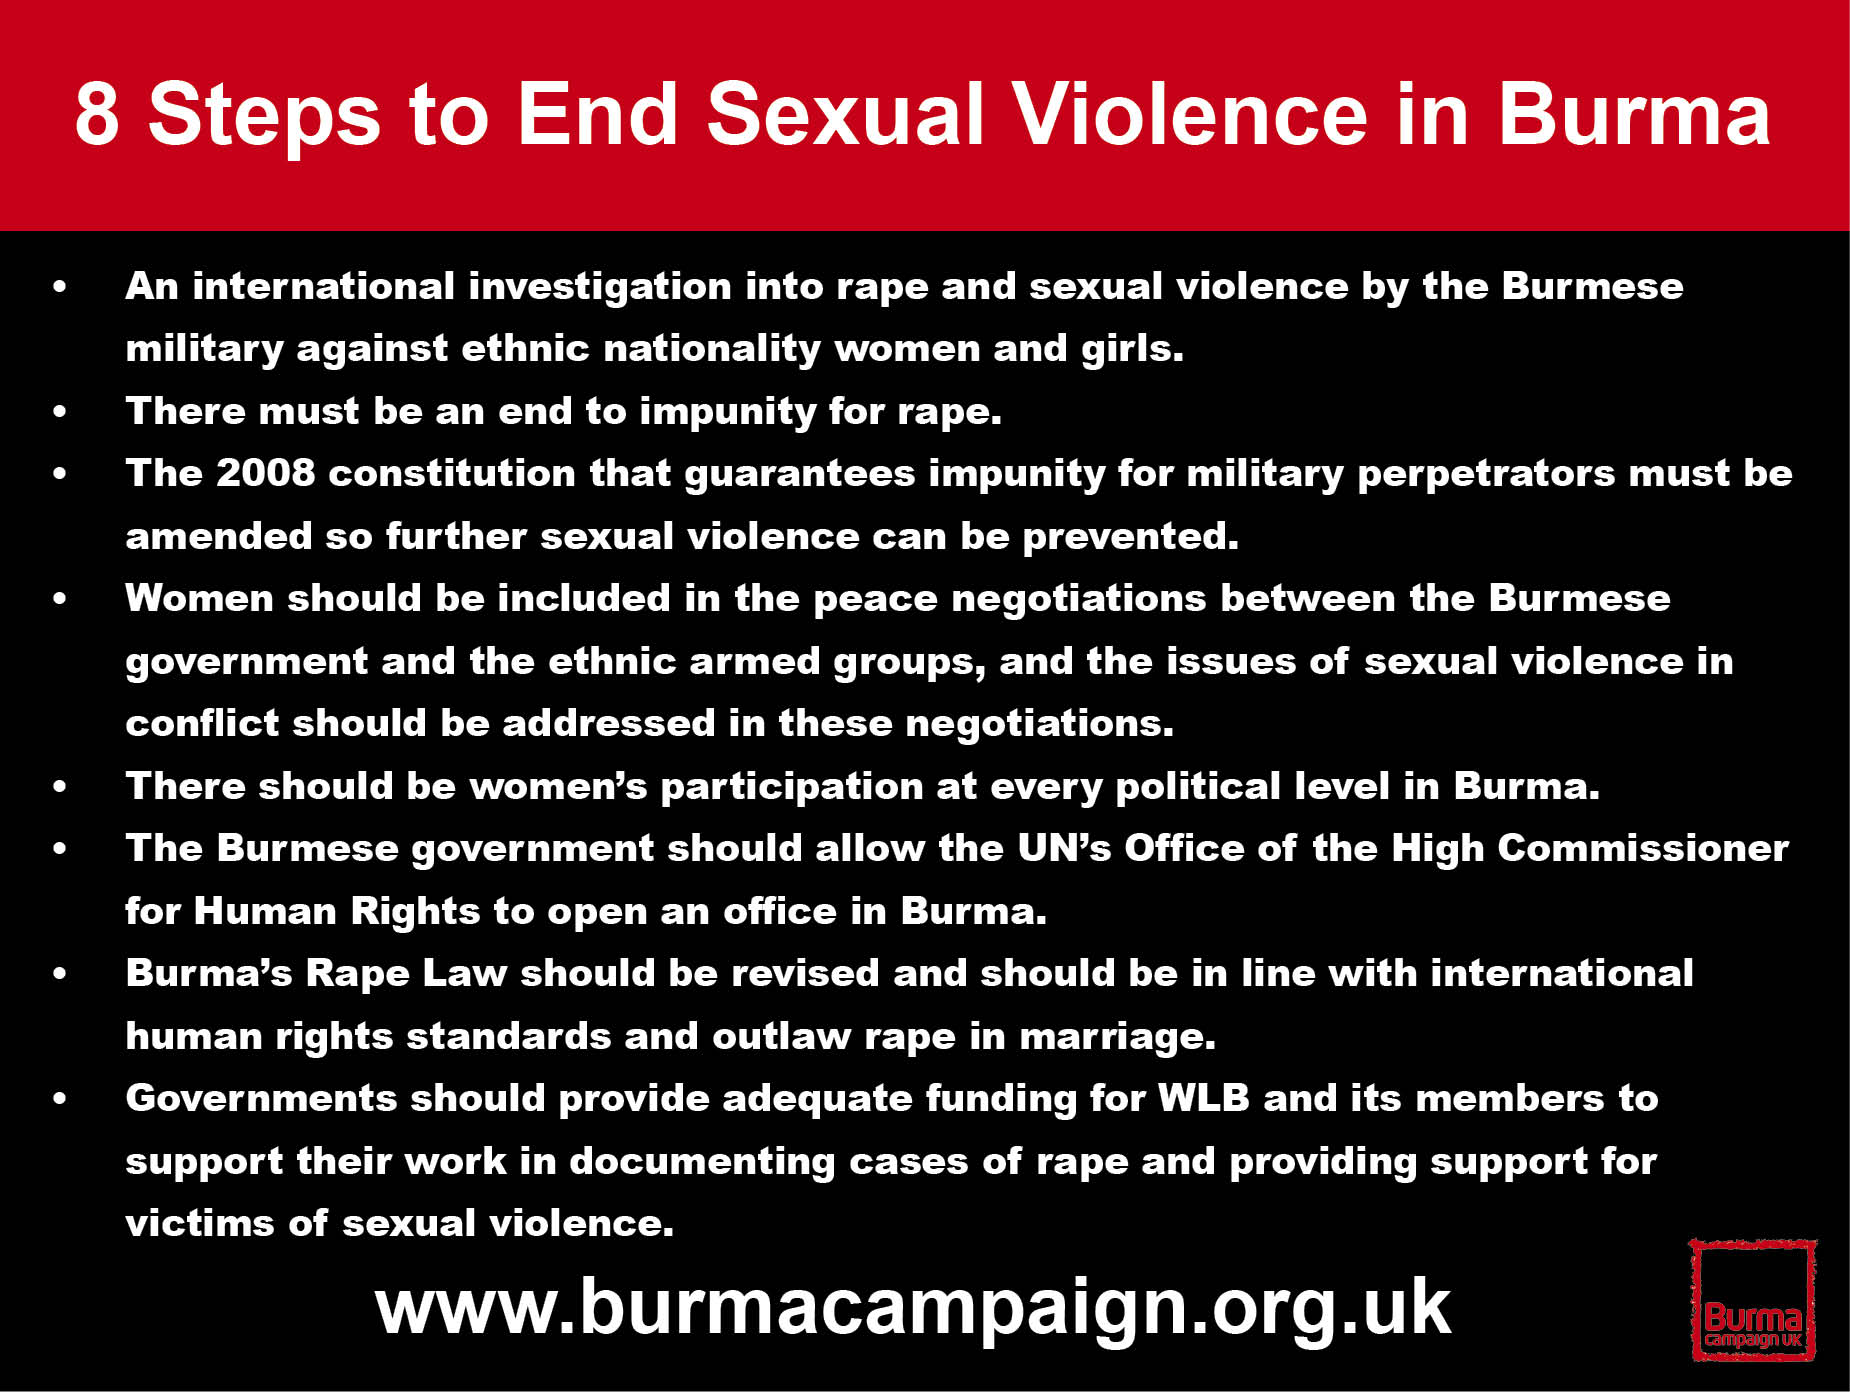 8 steps to end sexual violence in Burma